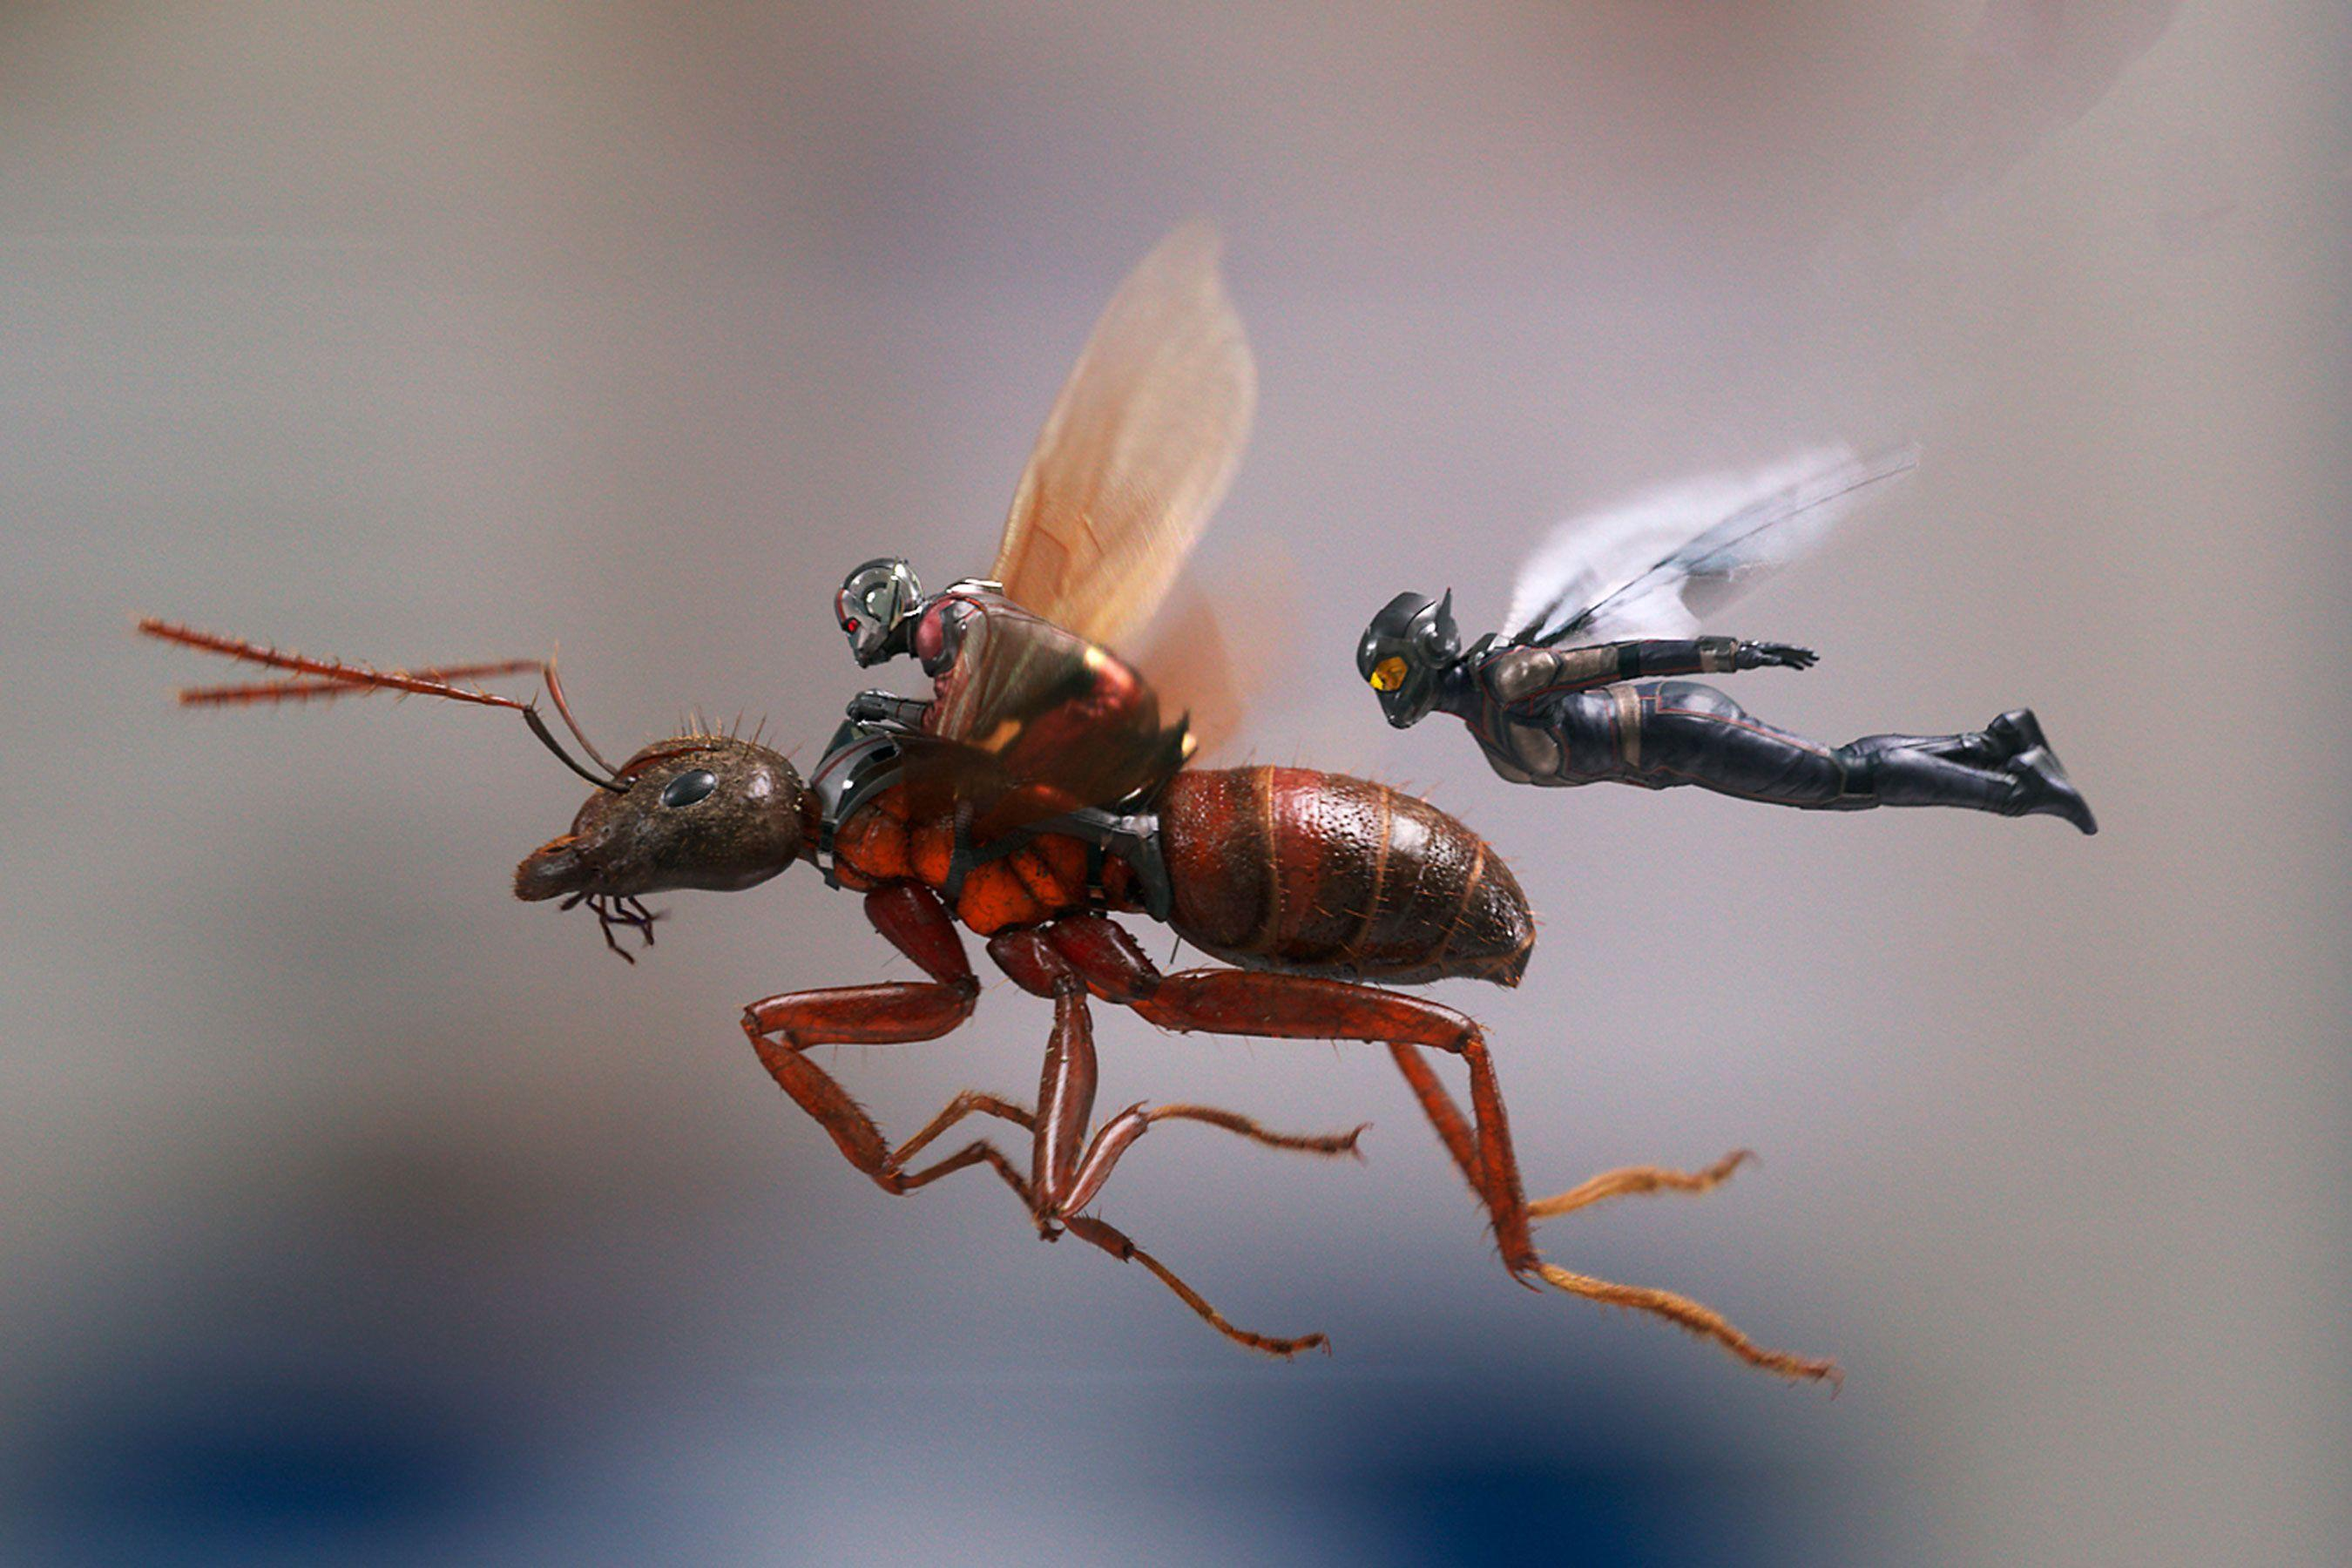 Ant Man And The Wasp, HD Movies, 4k Wallpapers, Image, Backgrounds